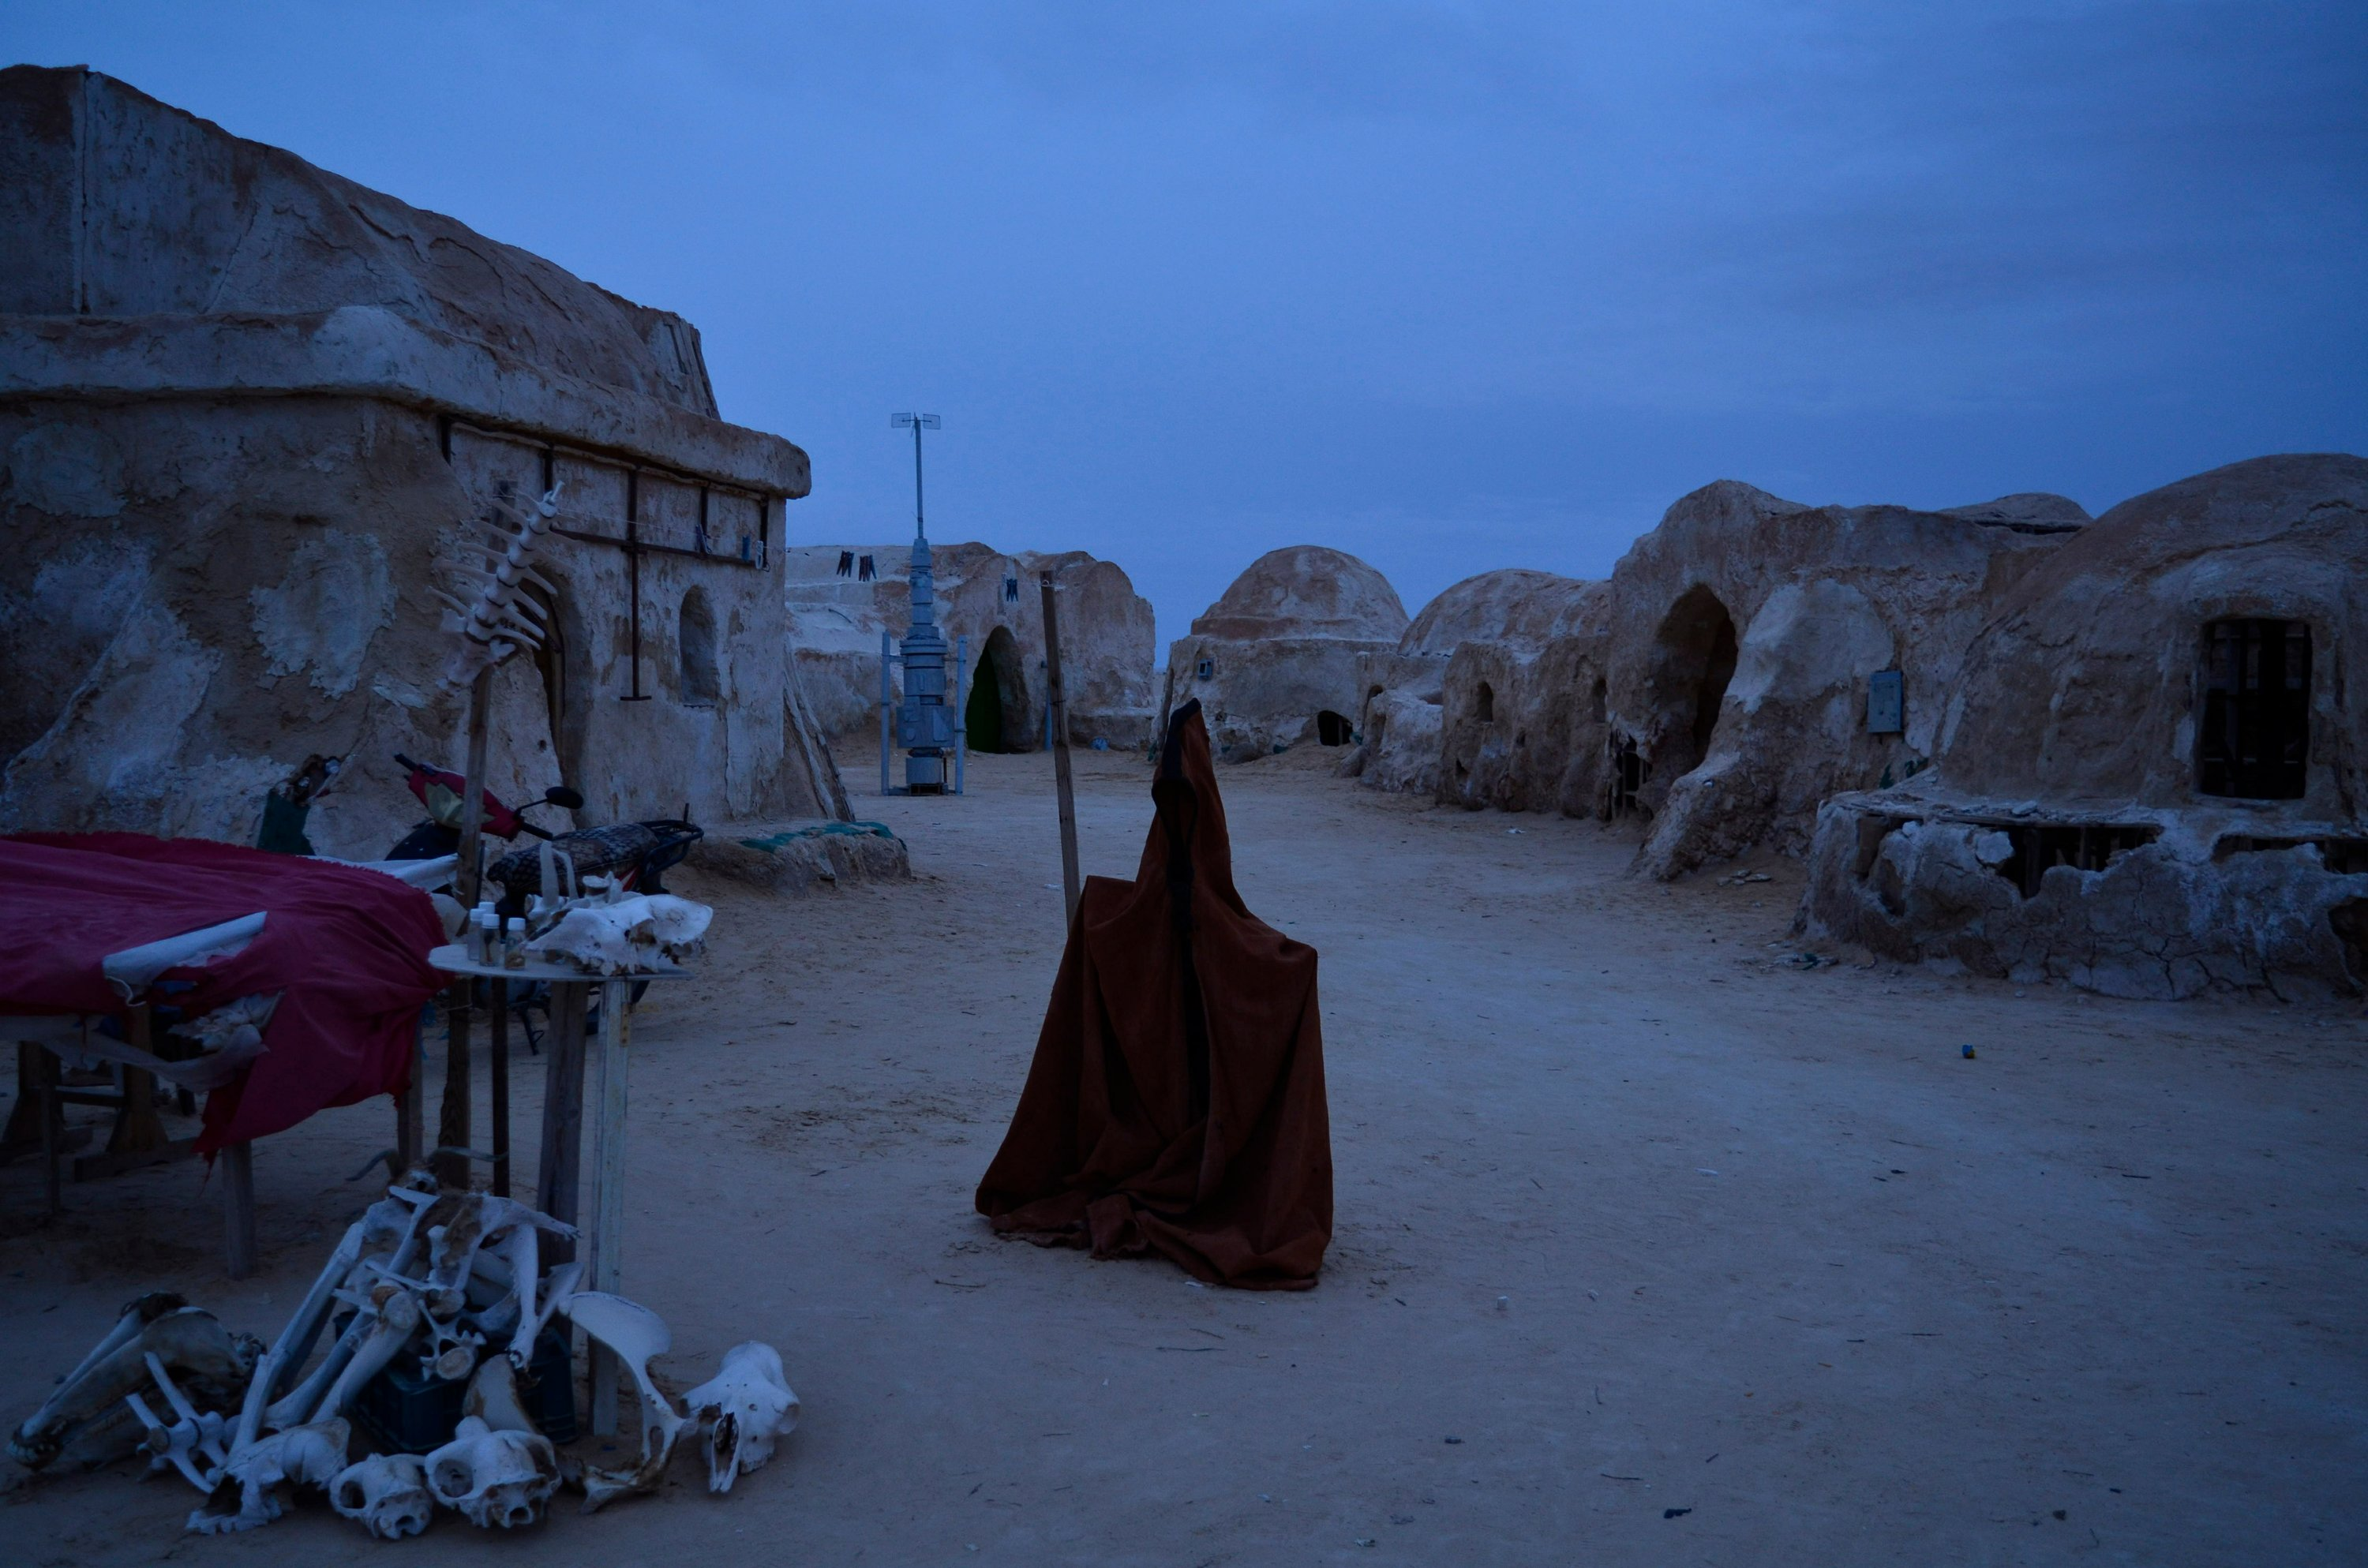 Visiting The Tunisian Desert Where Star Wars Was Filmed